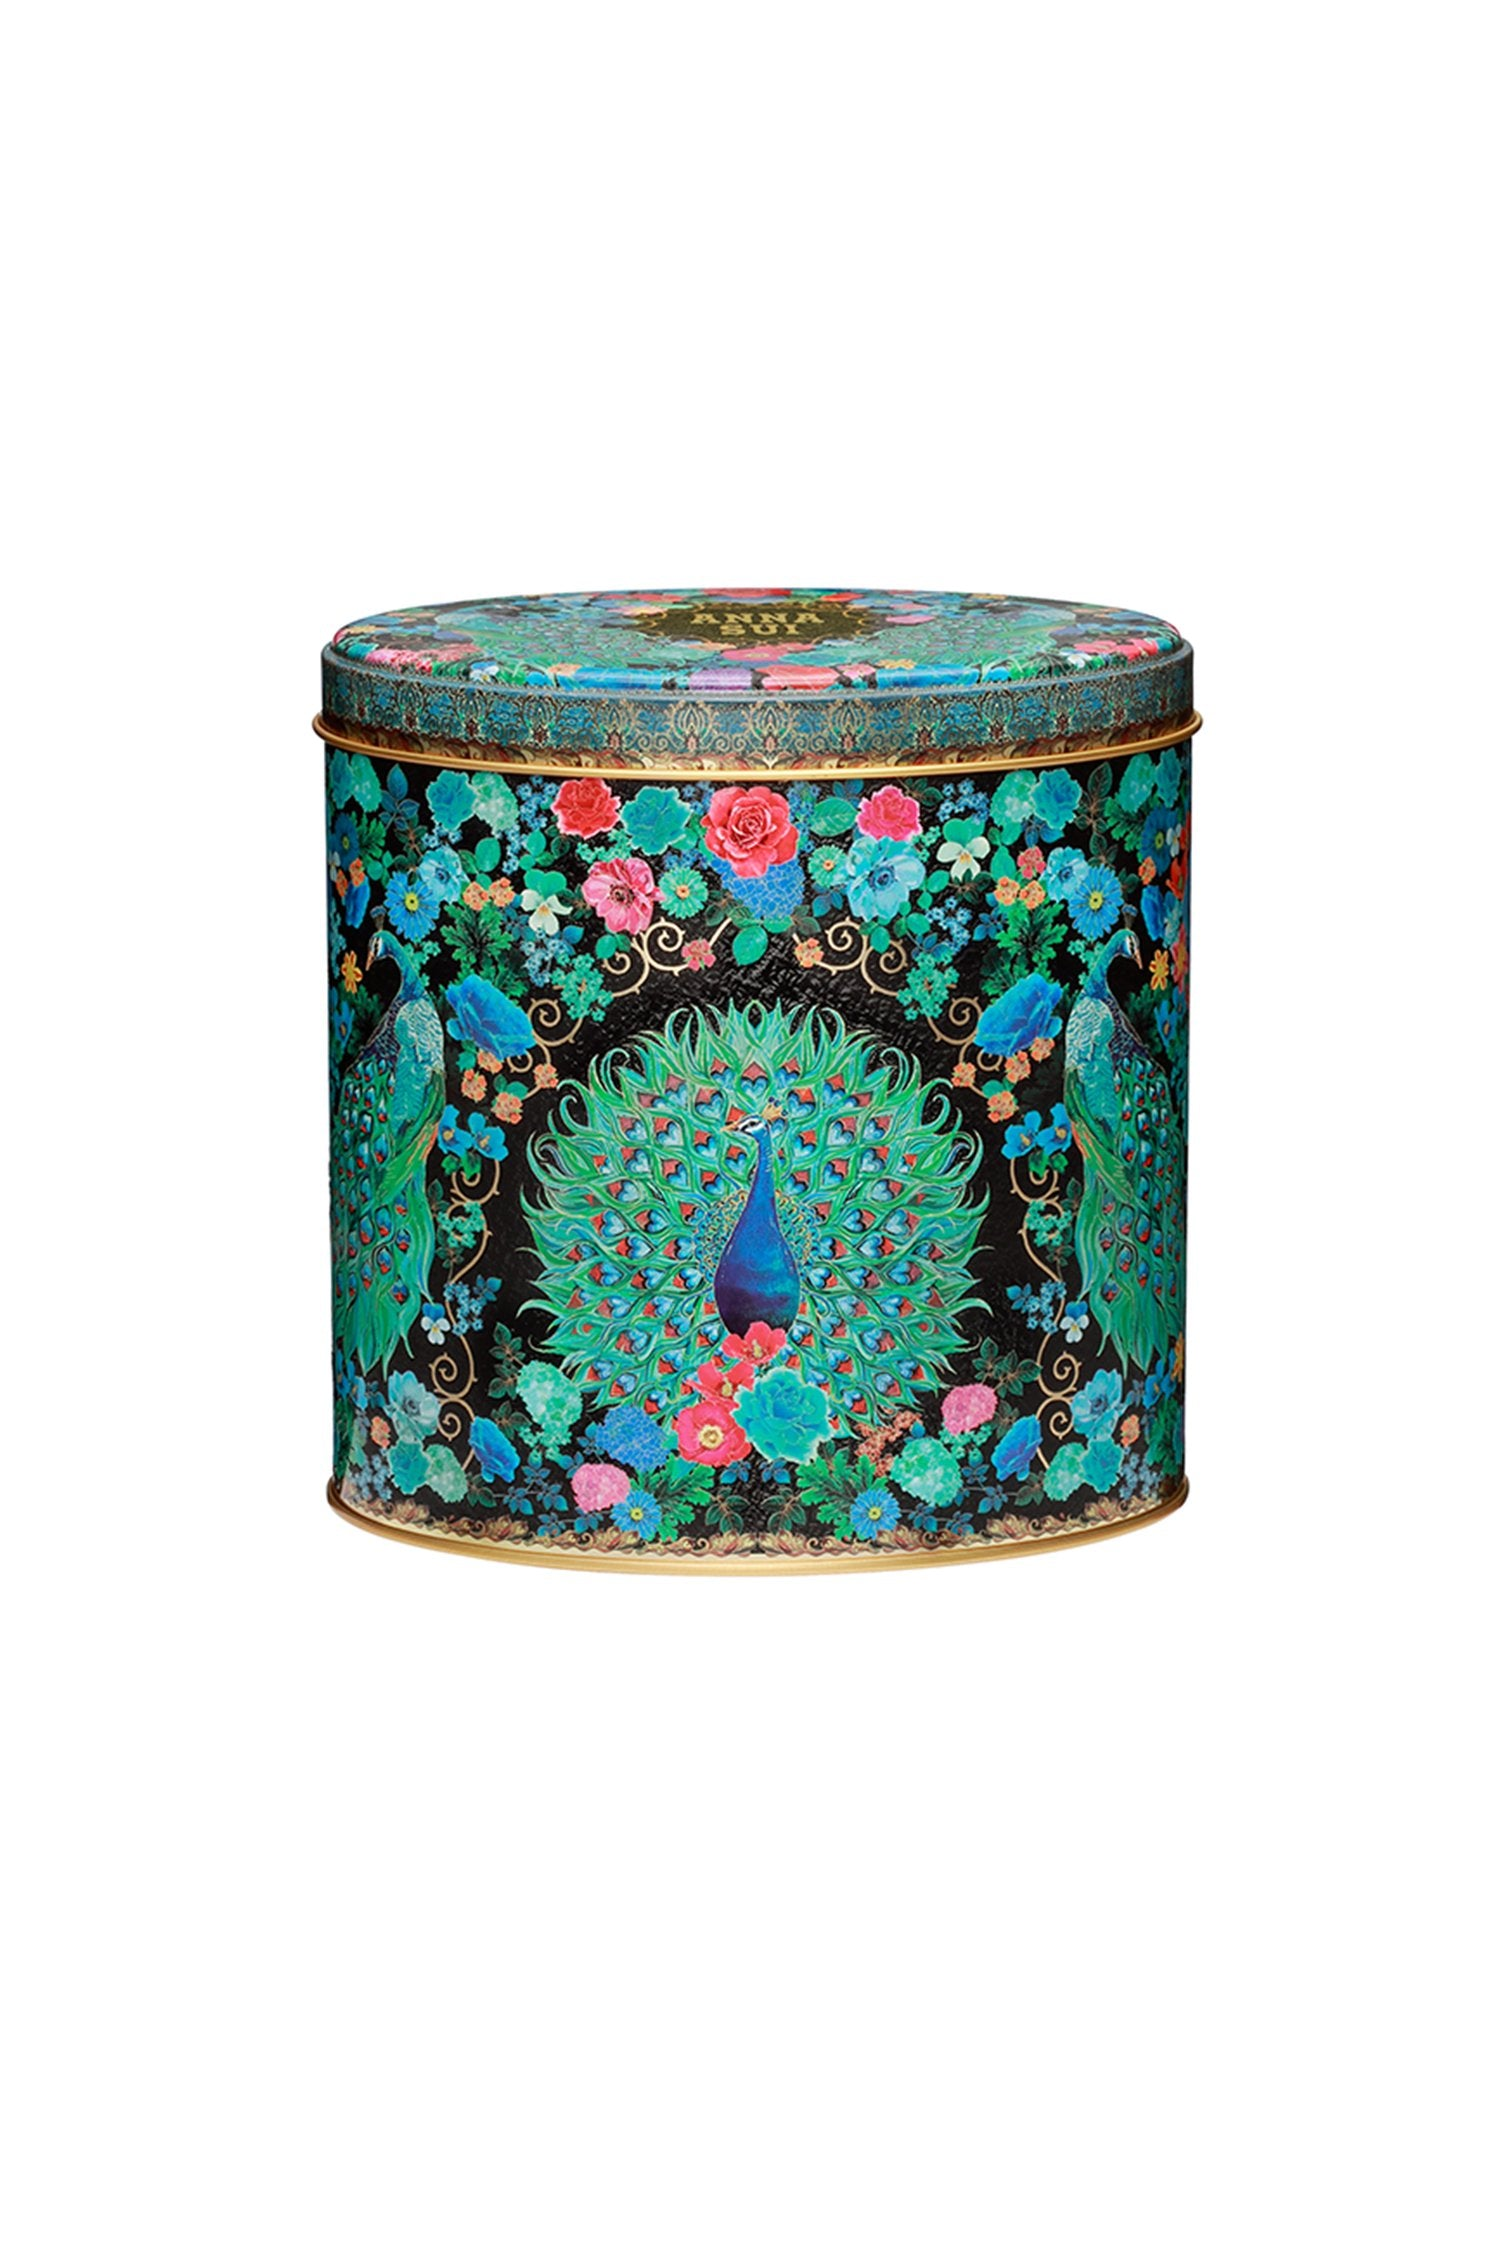 Peacock Beauty Box - Anna Sui